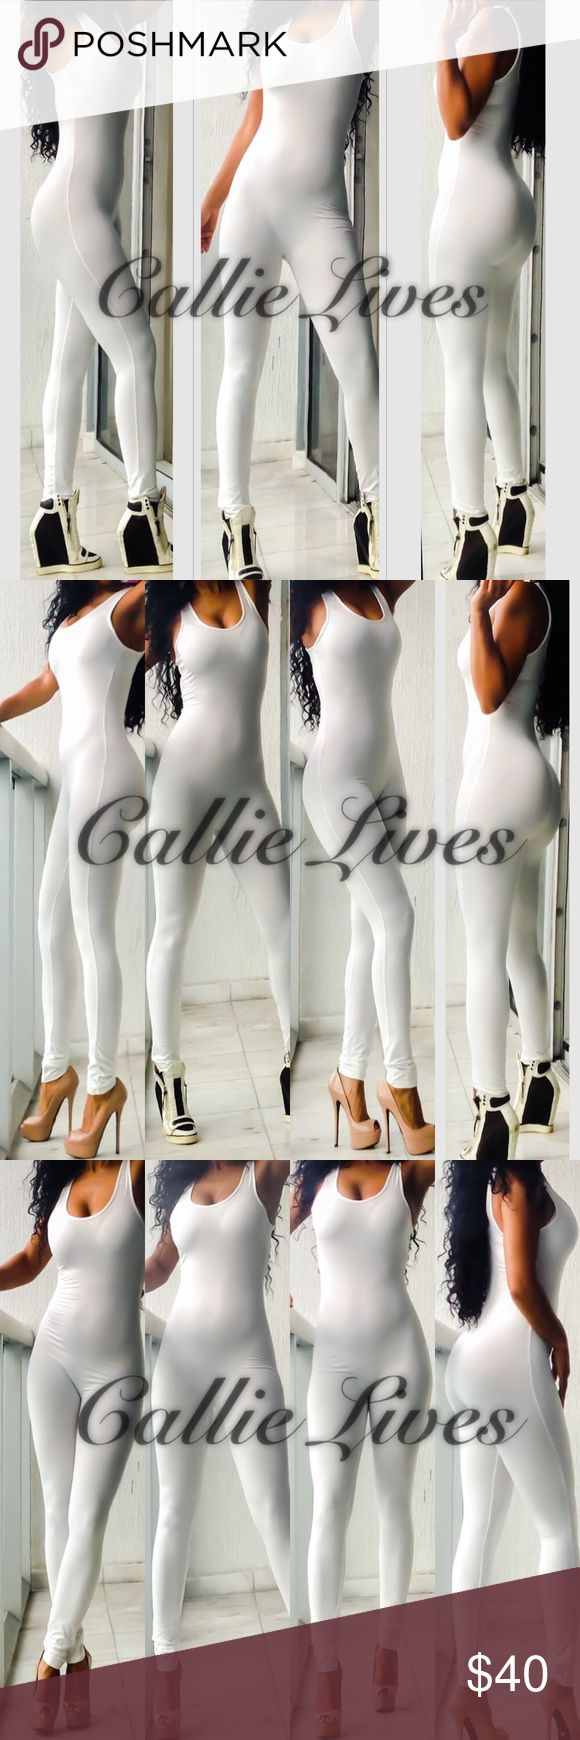 "MAKE OFFER Catsuit Bodysuit Romper Jumpsuit White Small Measurements when laid flat and up stretched: Armpit to armpit 14"" Waist 11.5"" Hips 15.5"" Length 54"" Inseam 30""  Medium Measurements when laid flat and up stretched: Armpit to armpit 15"" Waist 12"" Hips 16"" Length 54"" Inseam 30""  Large Measurements when laid flat and up stretched: Armpit to armpit 16"" Waist 12.5"" Hips 17"" Length 55"" Inseam 28.5"".                                                      I'm 5'6"" weighing 155lbs with…"